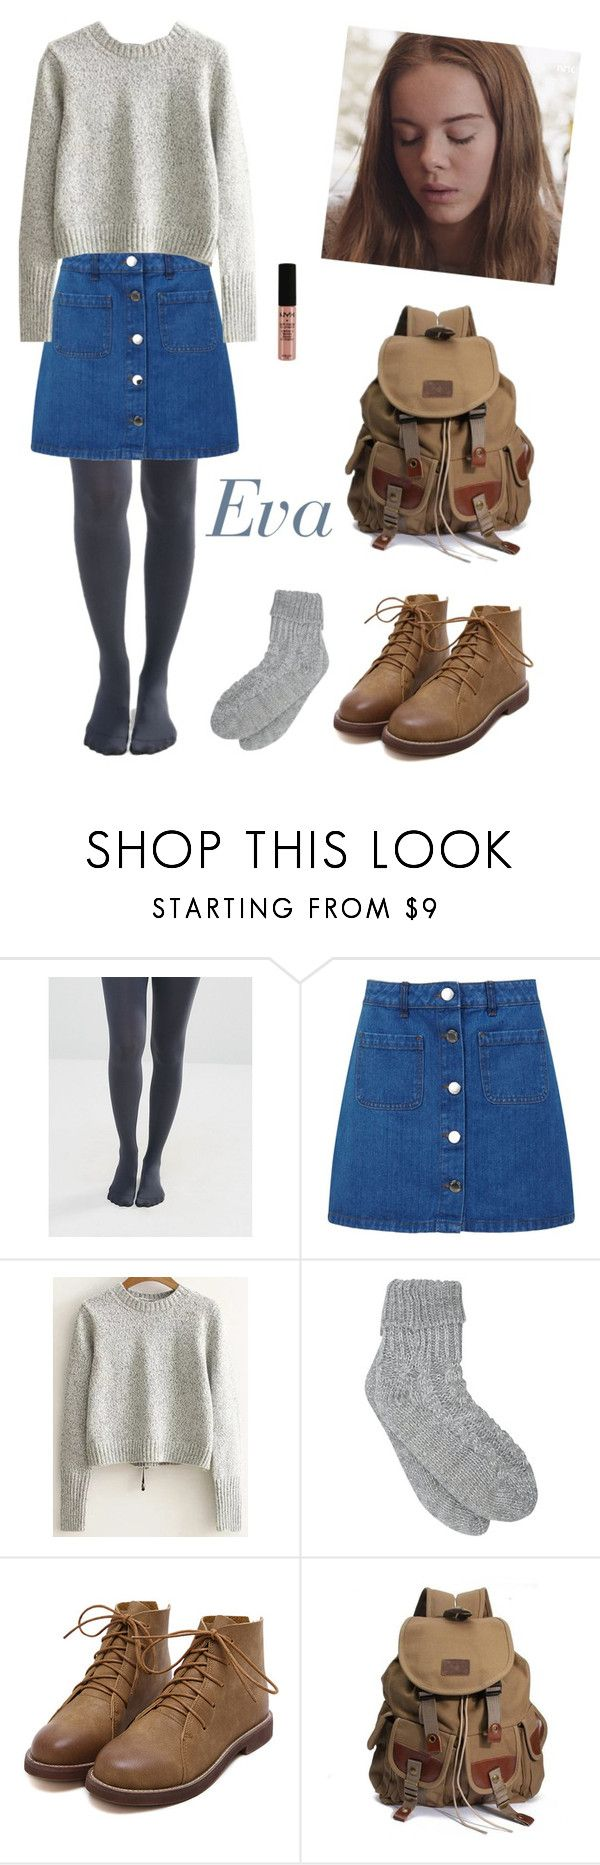 """""""Eva II"""" by aestheticarithmetic ❤ liked on Polyvore featuring ASOS, Miss Selfridge, M&Co, NYX, EVA and skam"""